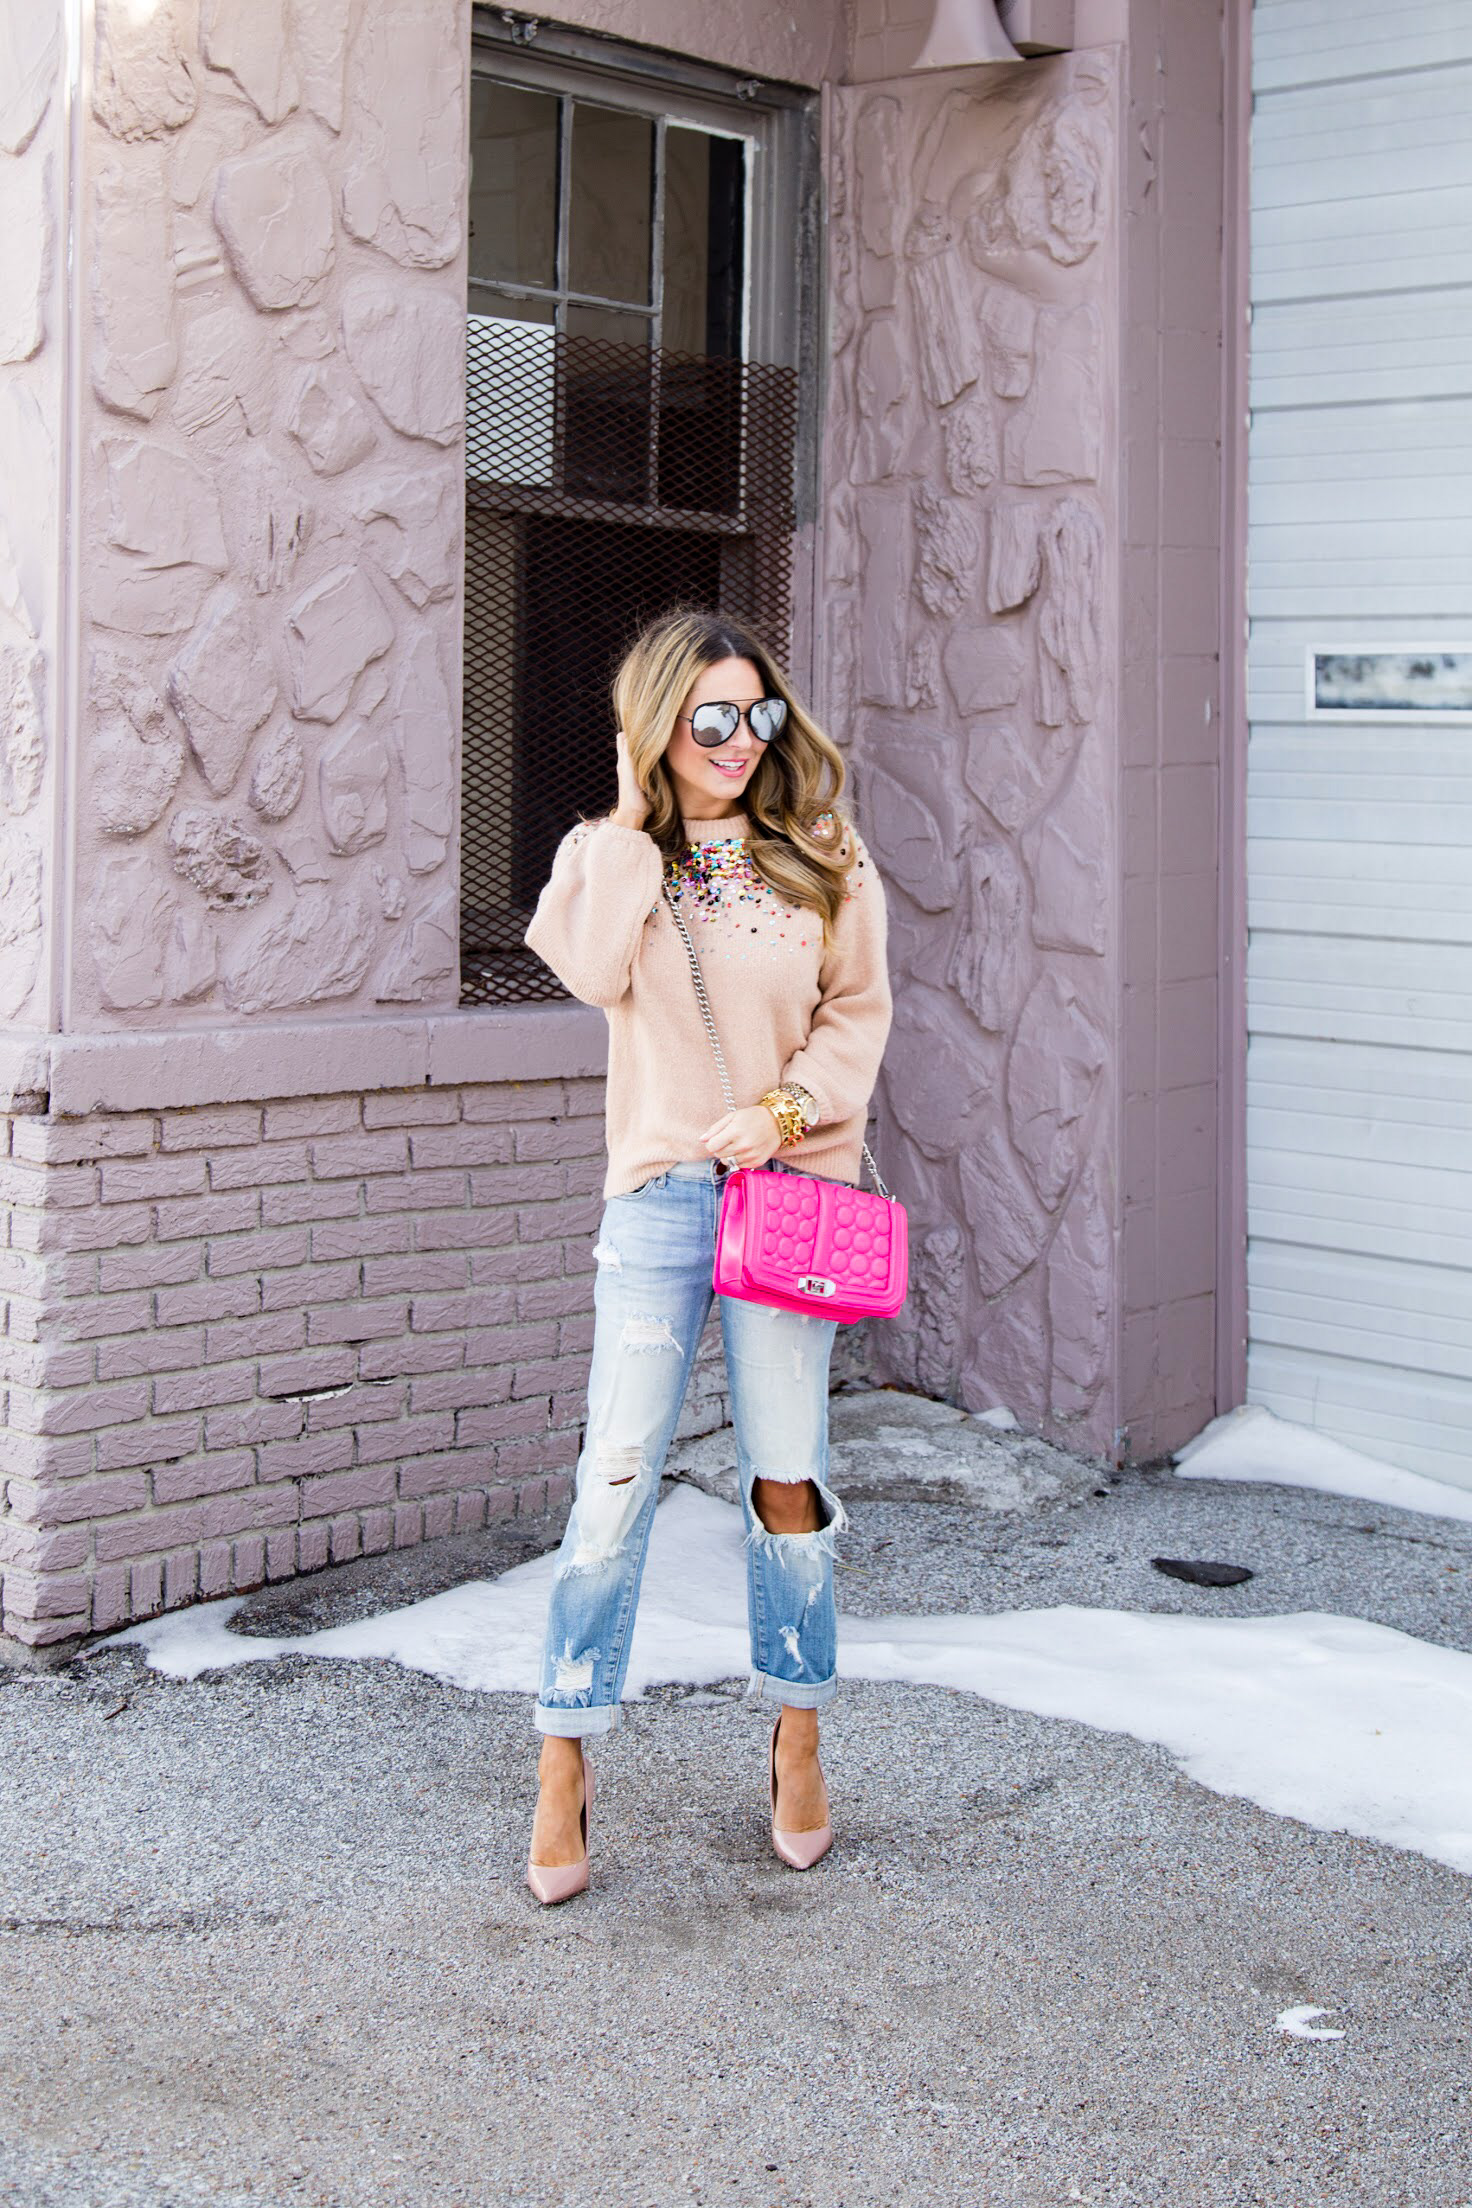 9fdc70143c0 Sequin Sweater with Boyfriend Jeans and Heels for Valentine s ...